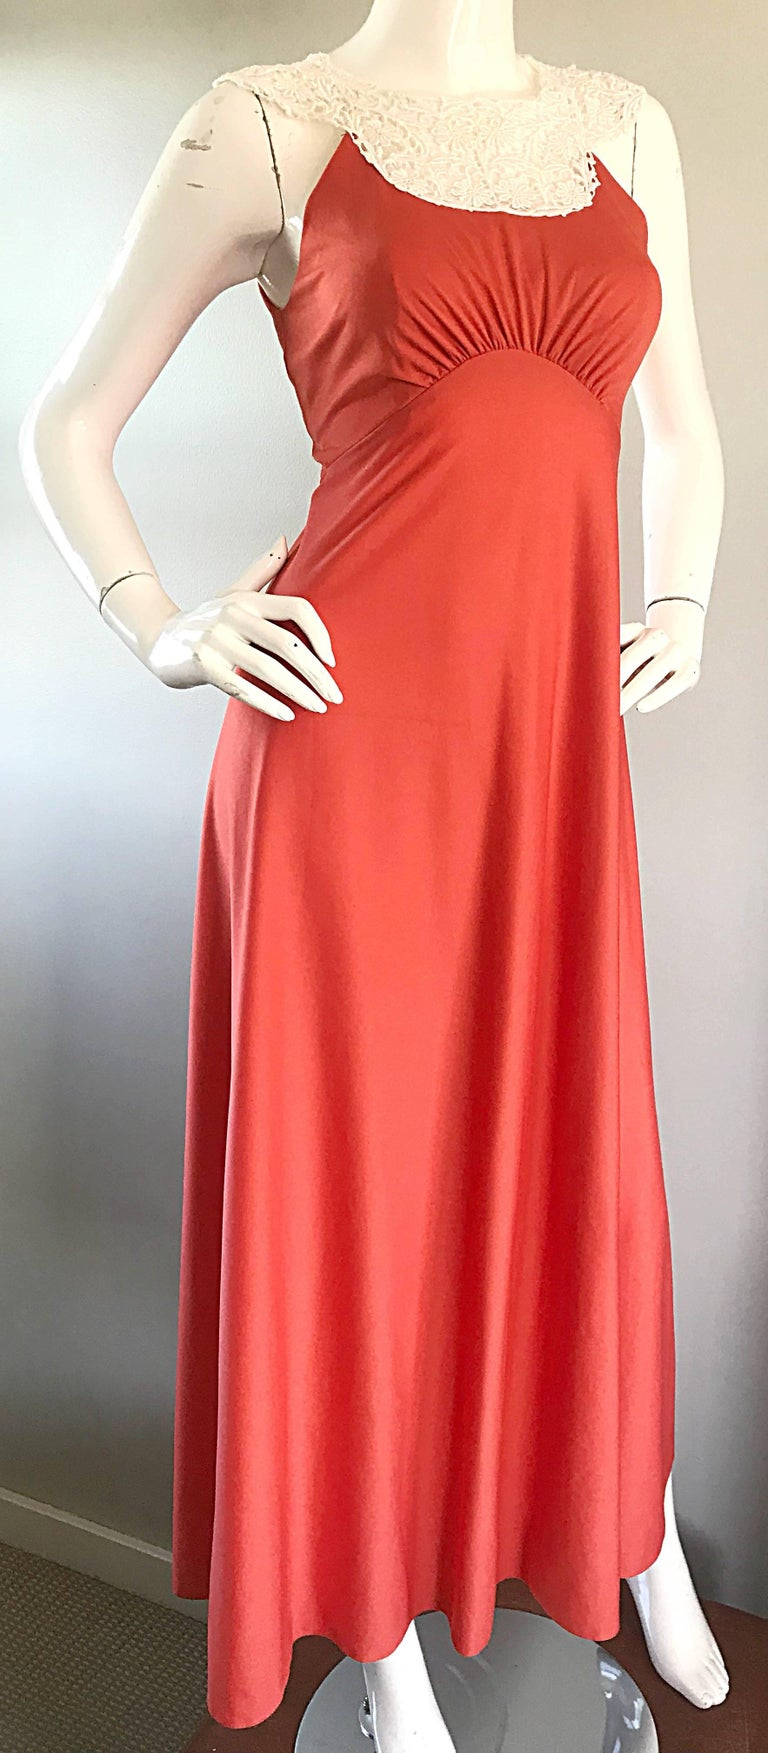 1970s Coral Salmon Pink Jersey + Crochet Lace Collar 70s Vintage Maxi Dress For Sale 4